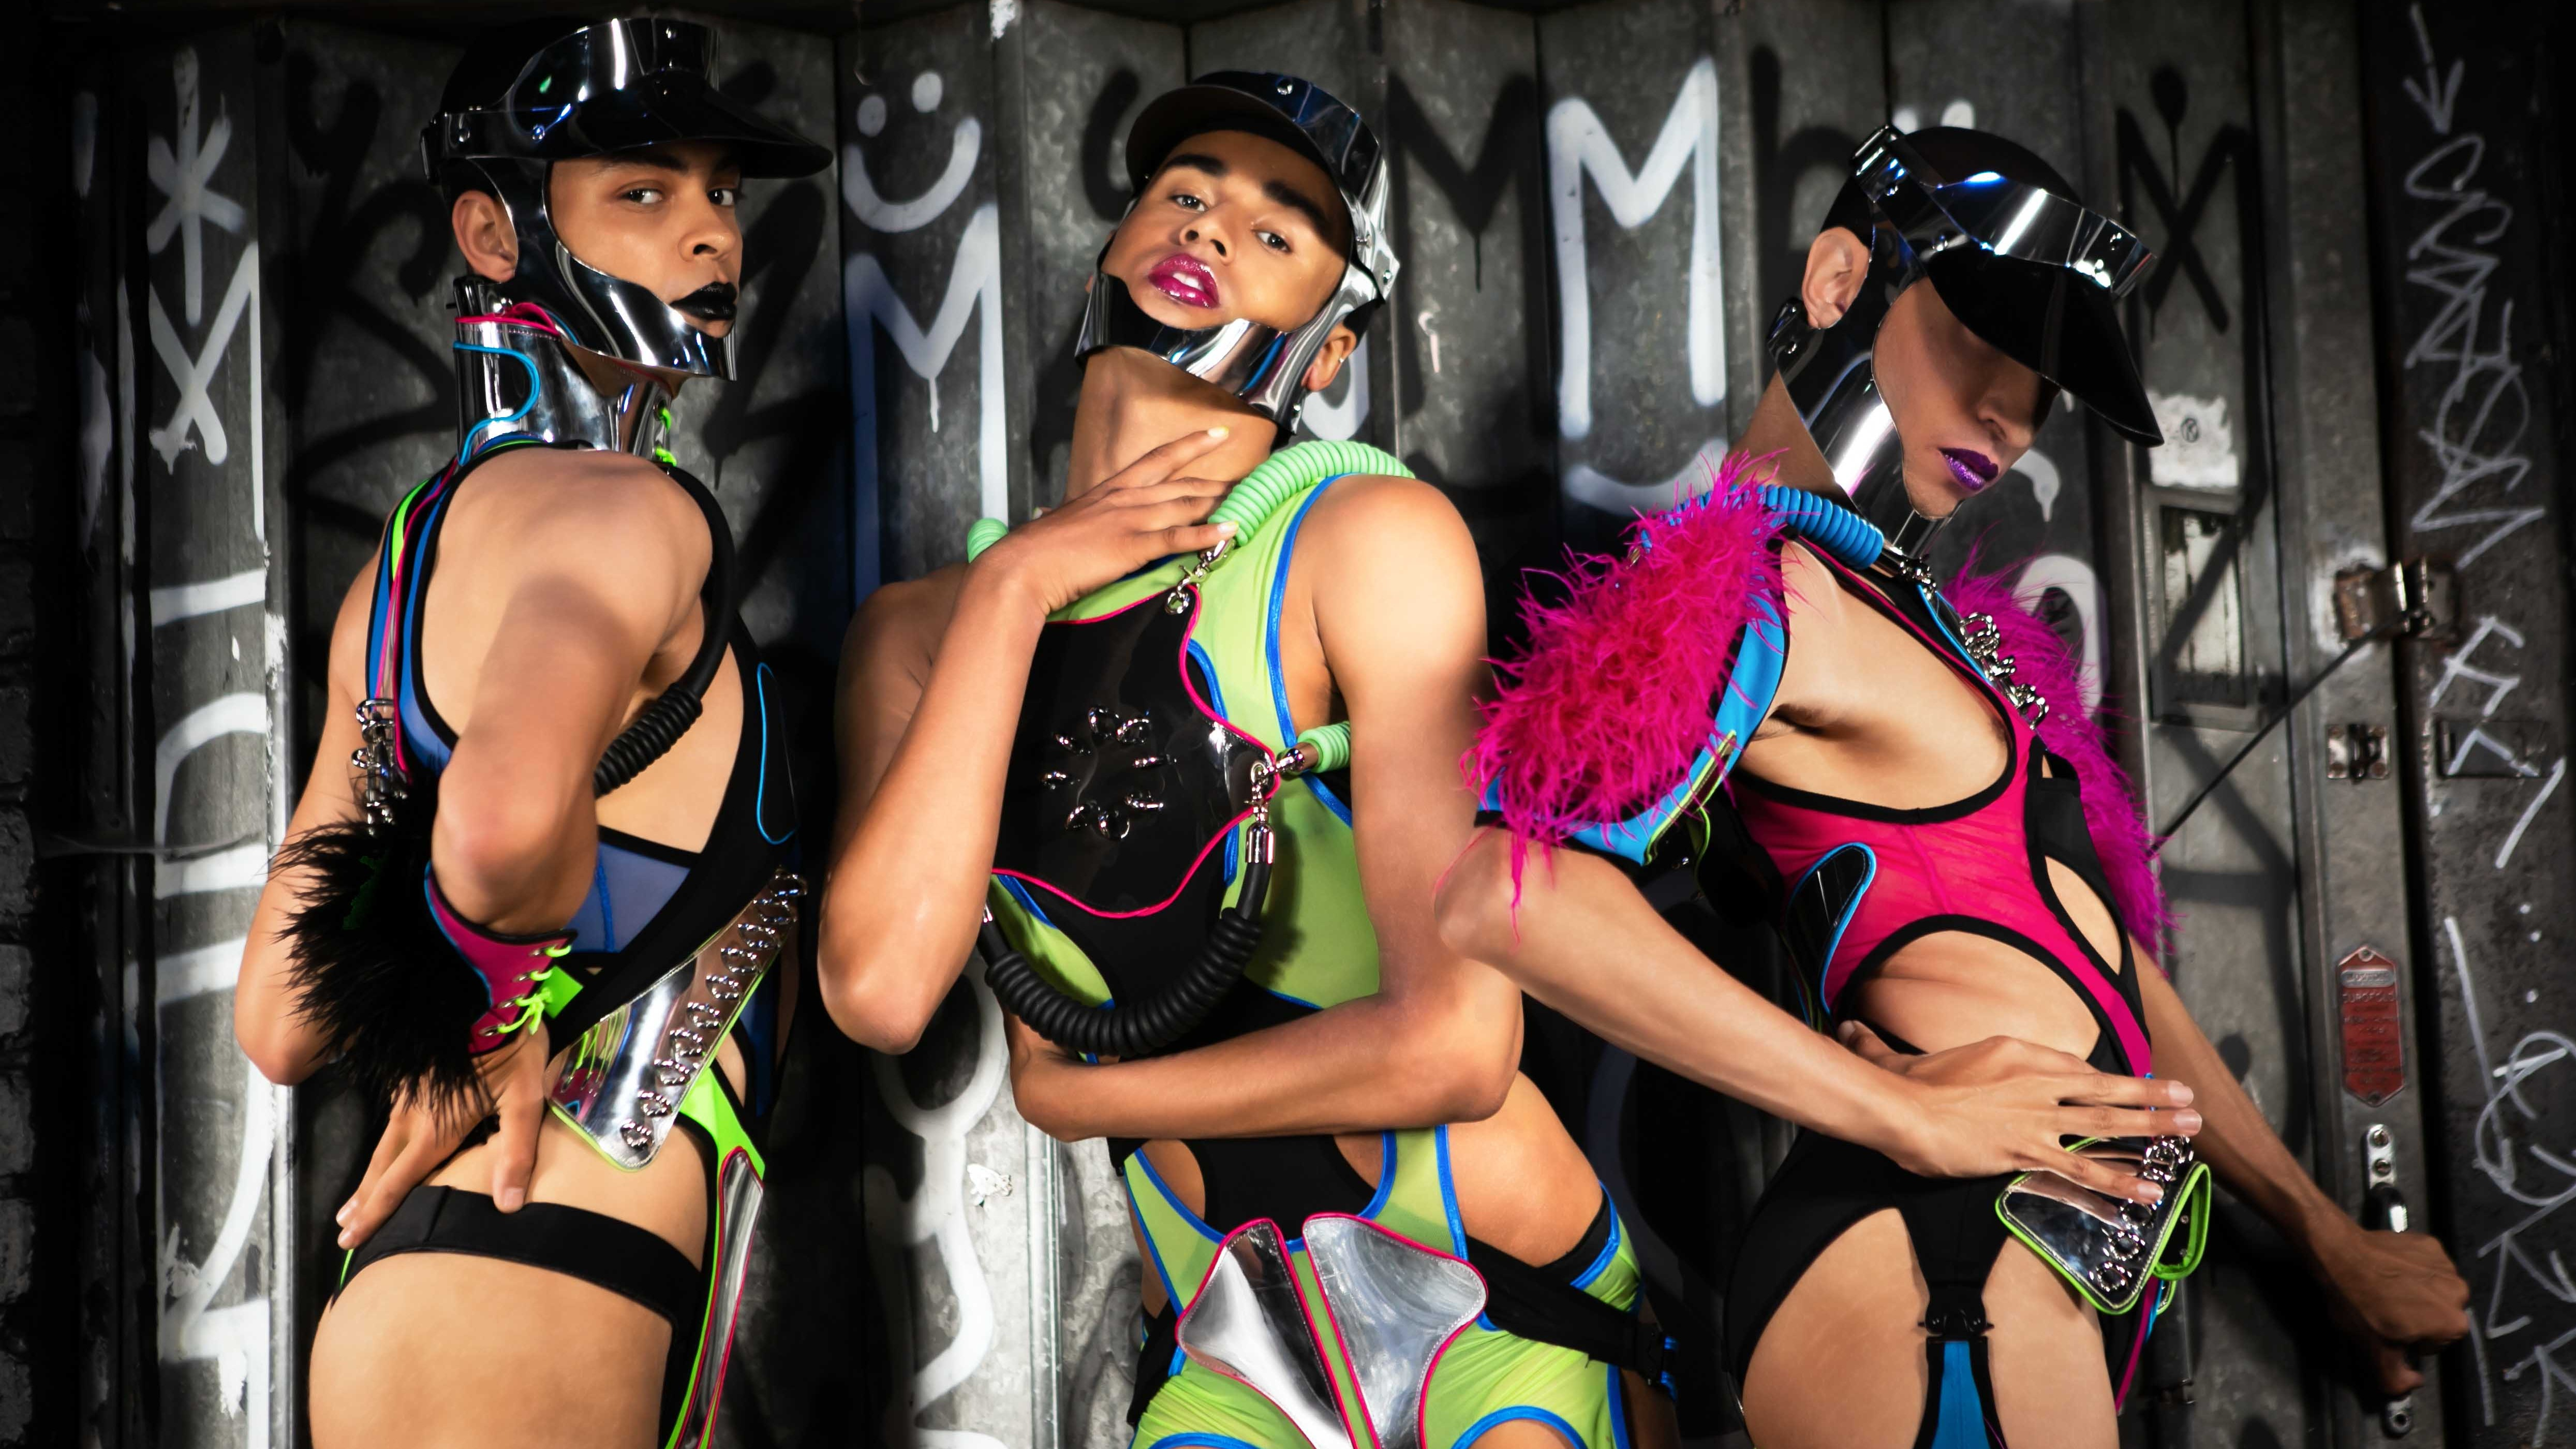 HOUSE OF GHETTO PRESENTS: THE BLACK PRIDE MANCHESTER VOGUE BALL